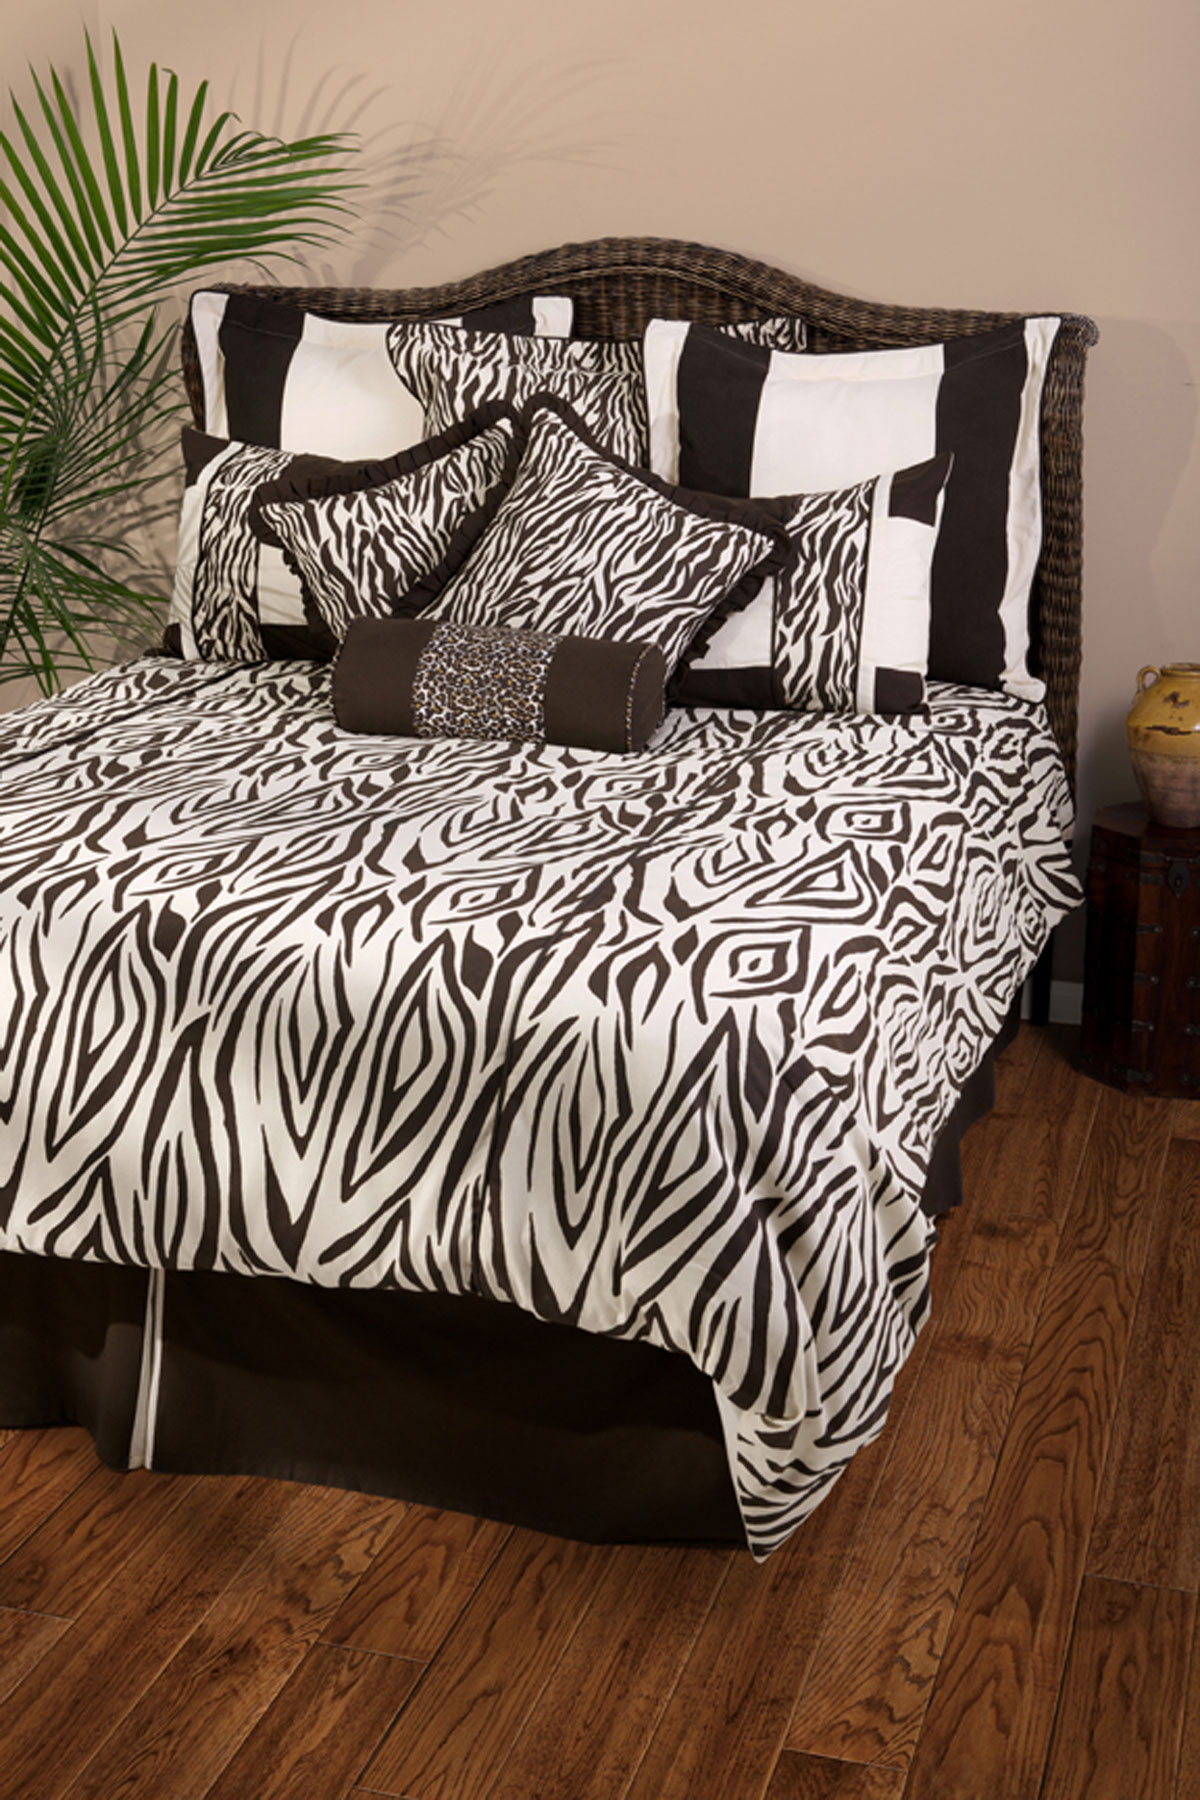 Zebra by Rizzy Home Bedding